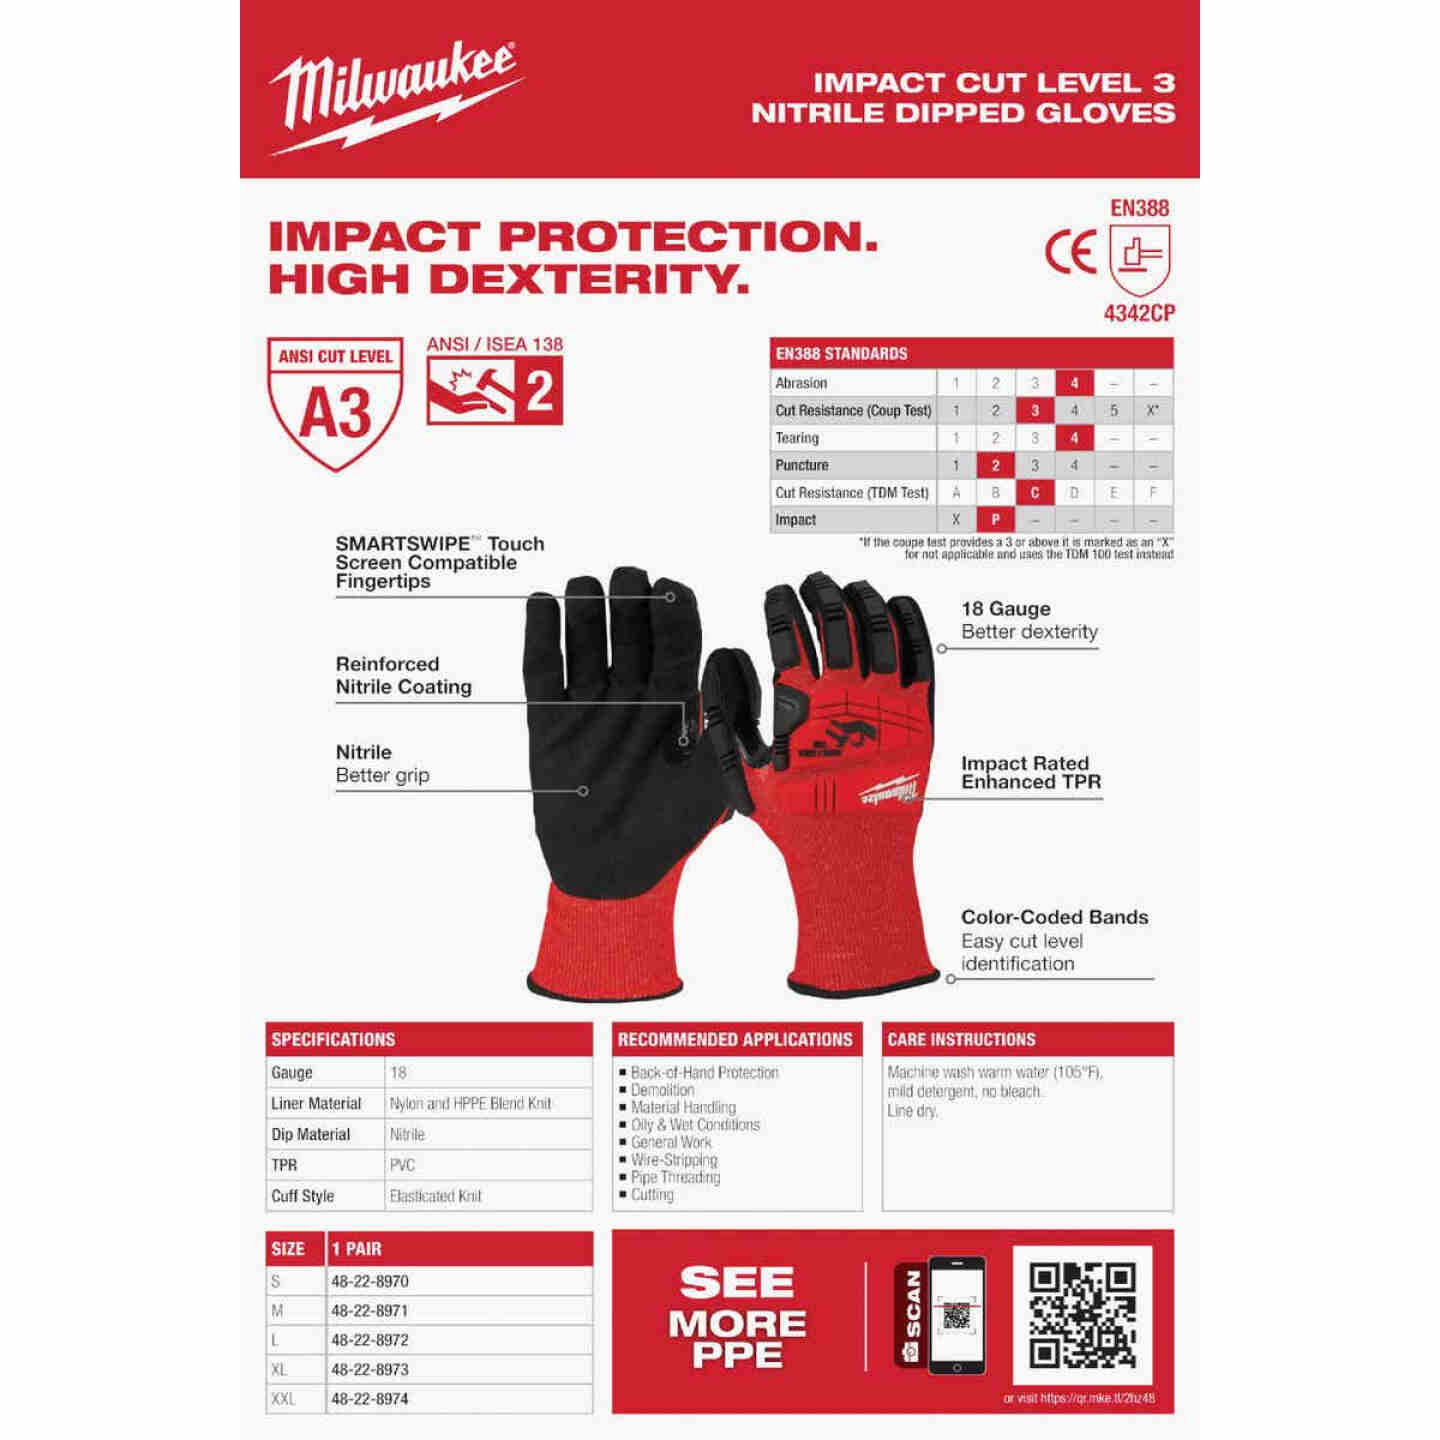 Milwaukee Impact Cut Level 3 XL Men's Nitrile Dipped Work Gloves Image 5